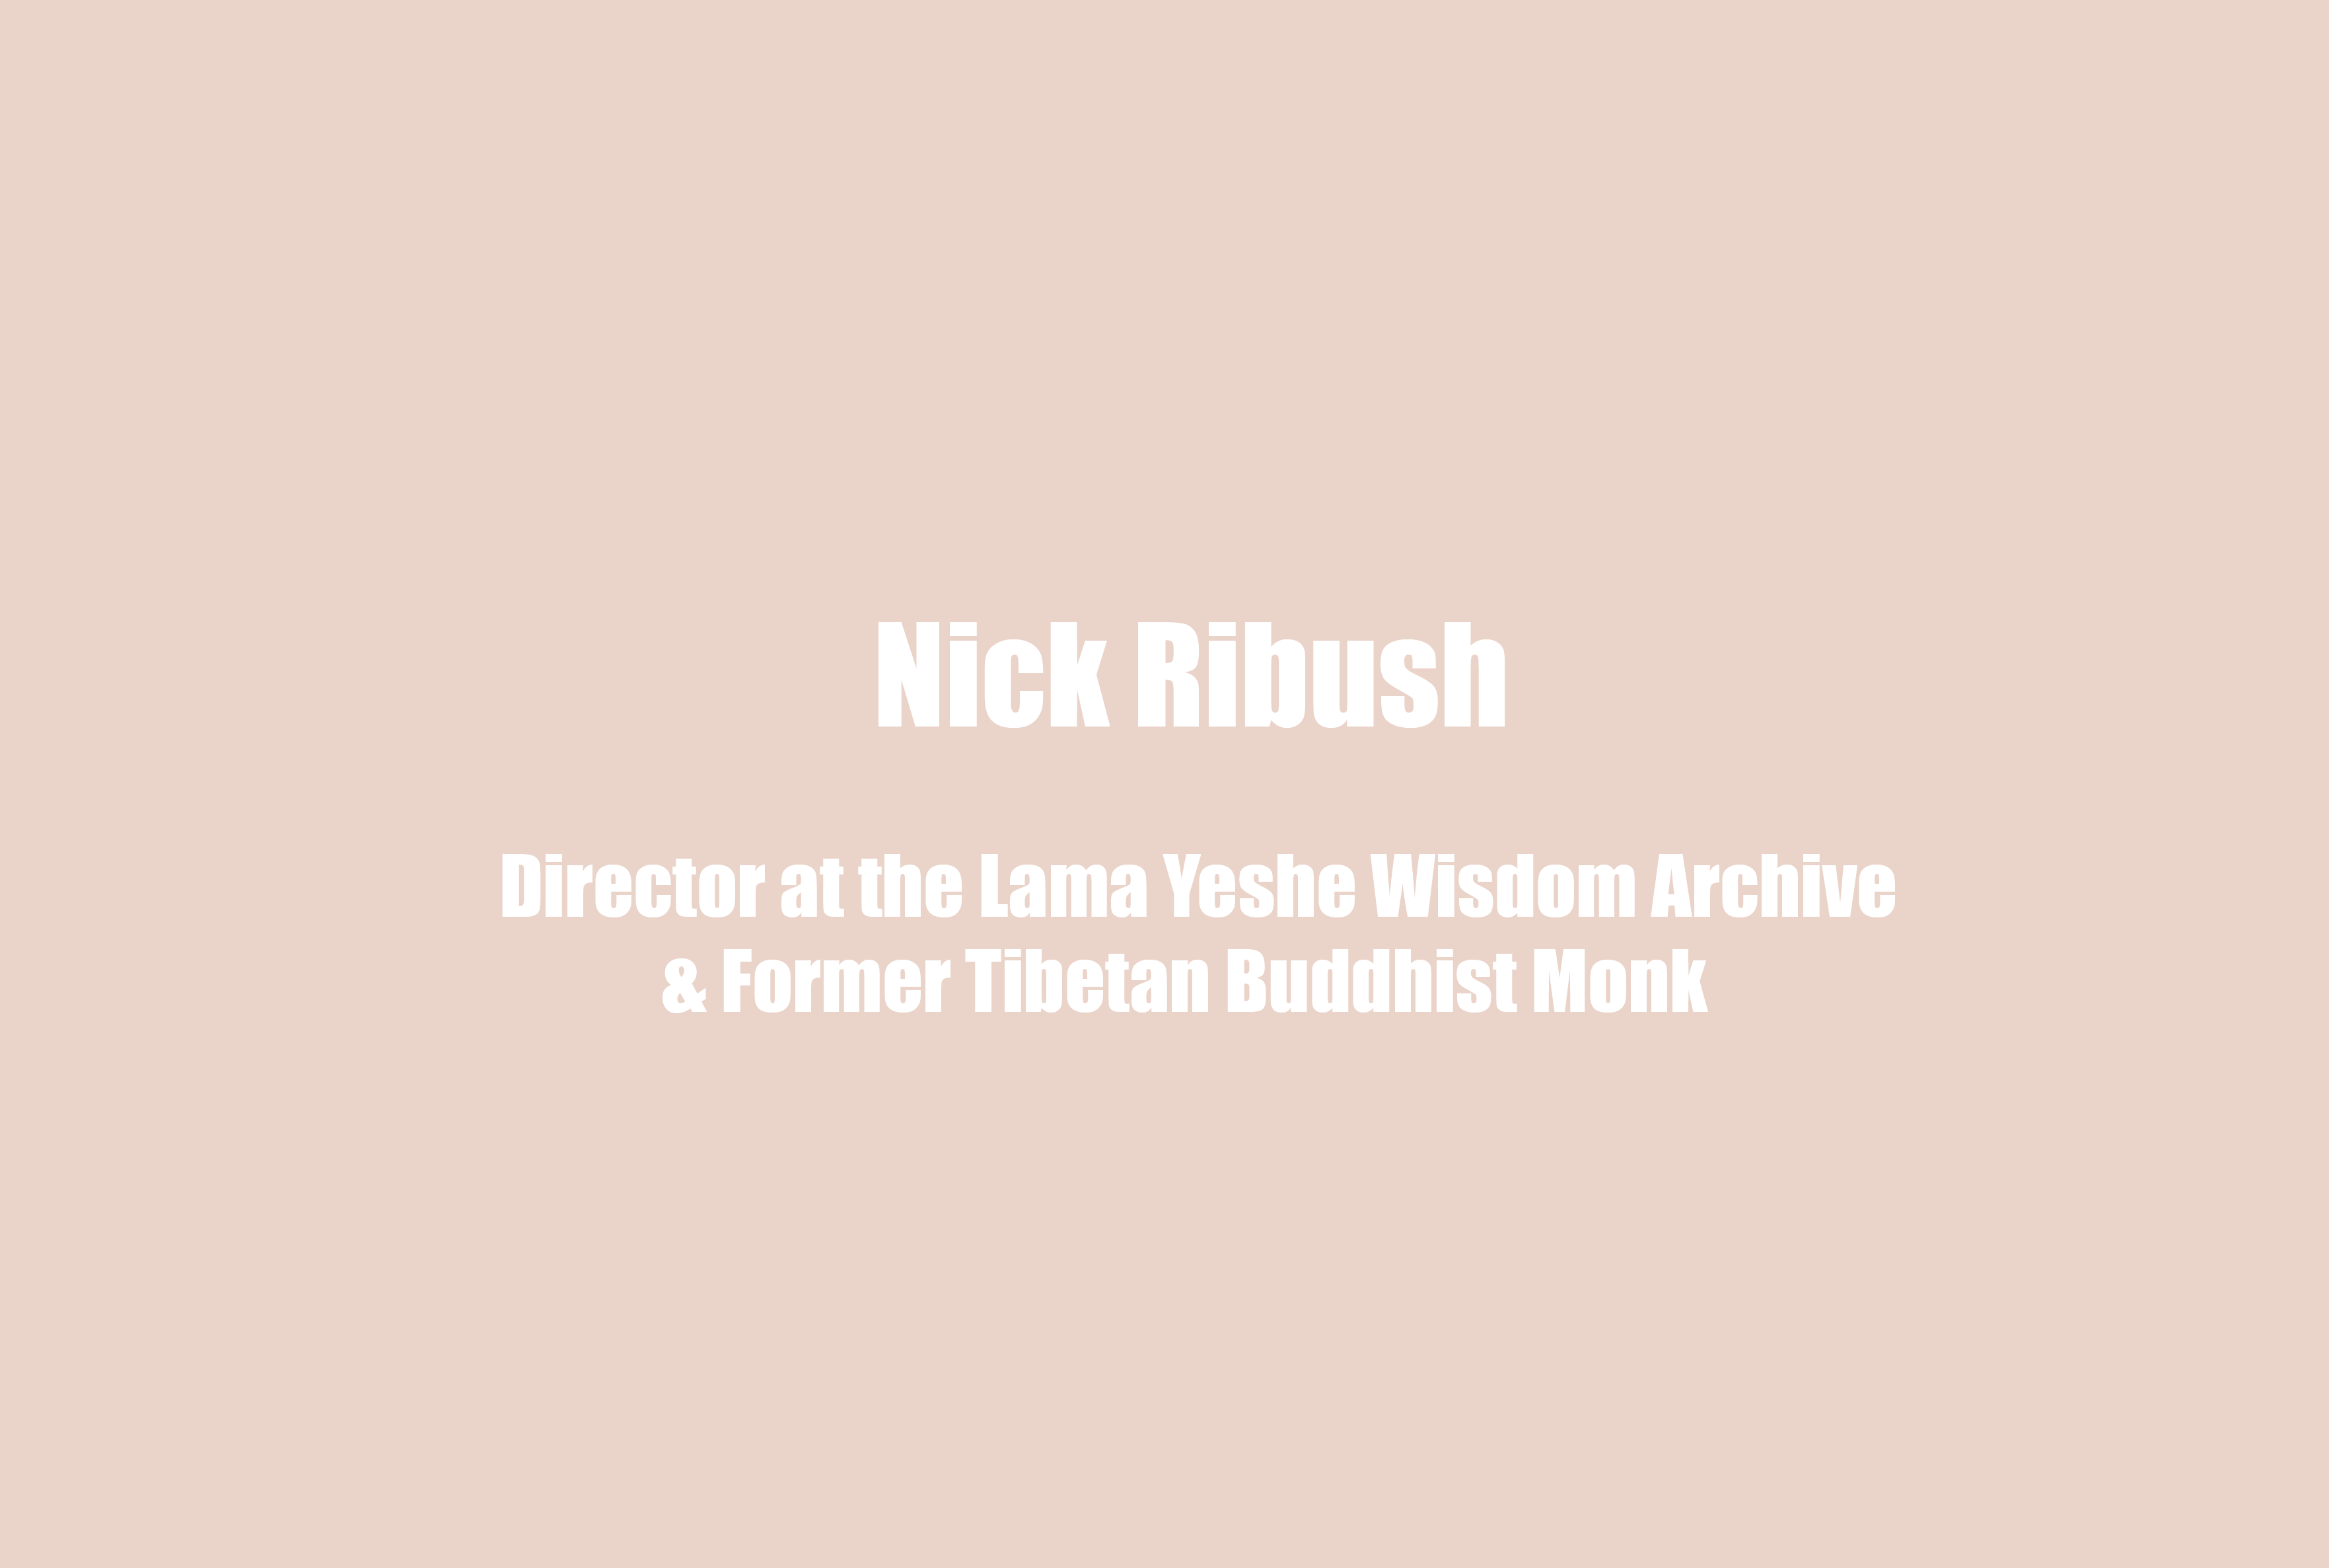 Nicholas Ribush, Director of the Lama Yeshe Wisdom Archive and Former Tibetan Buddhist Monk: On Disillusionment Working in the Medical Field, Whether Schools of Buddhism Stigmatize Mental Health, and a Buddhist Point of View on Wellbeing